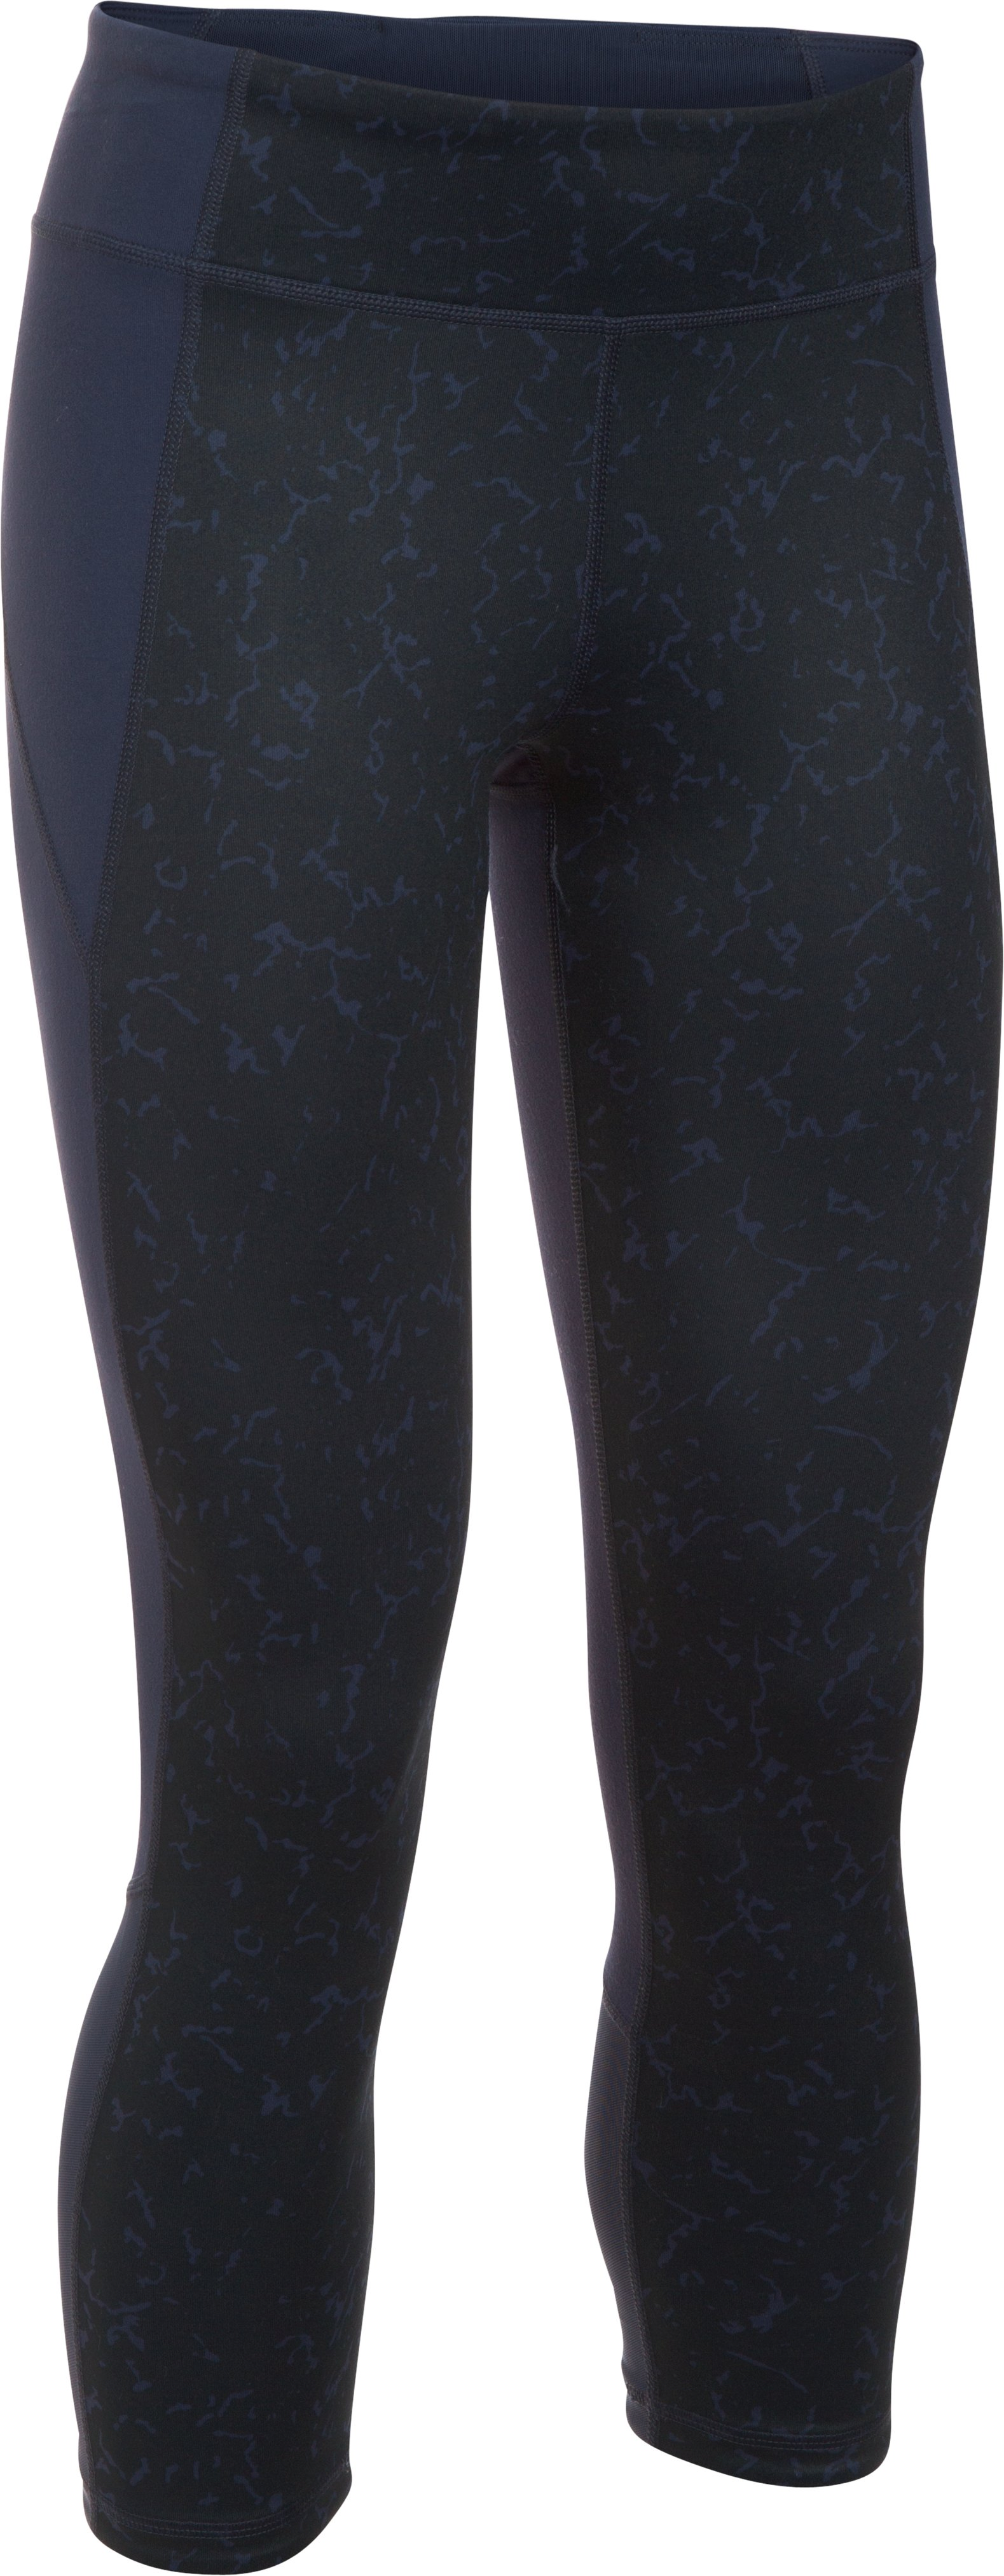 Women's UA Mirror Feathered Marble Crop, Midnight Navy